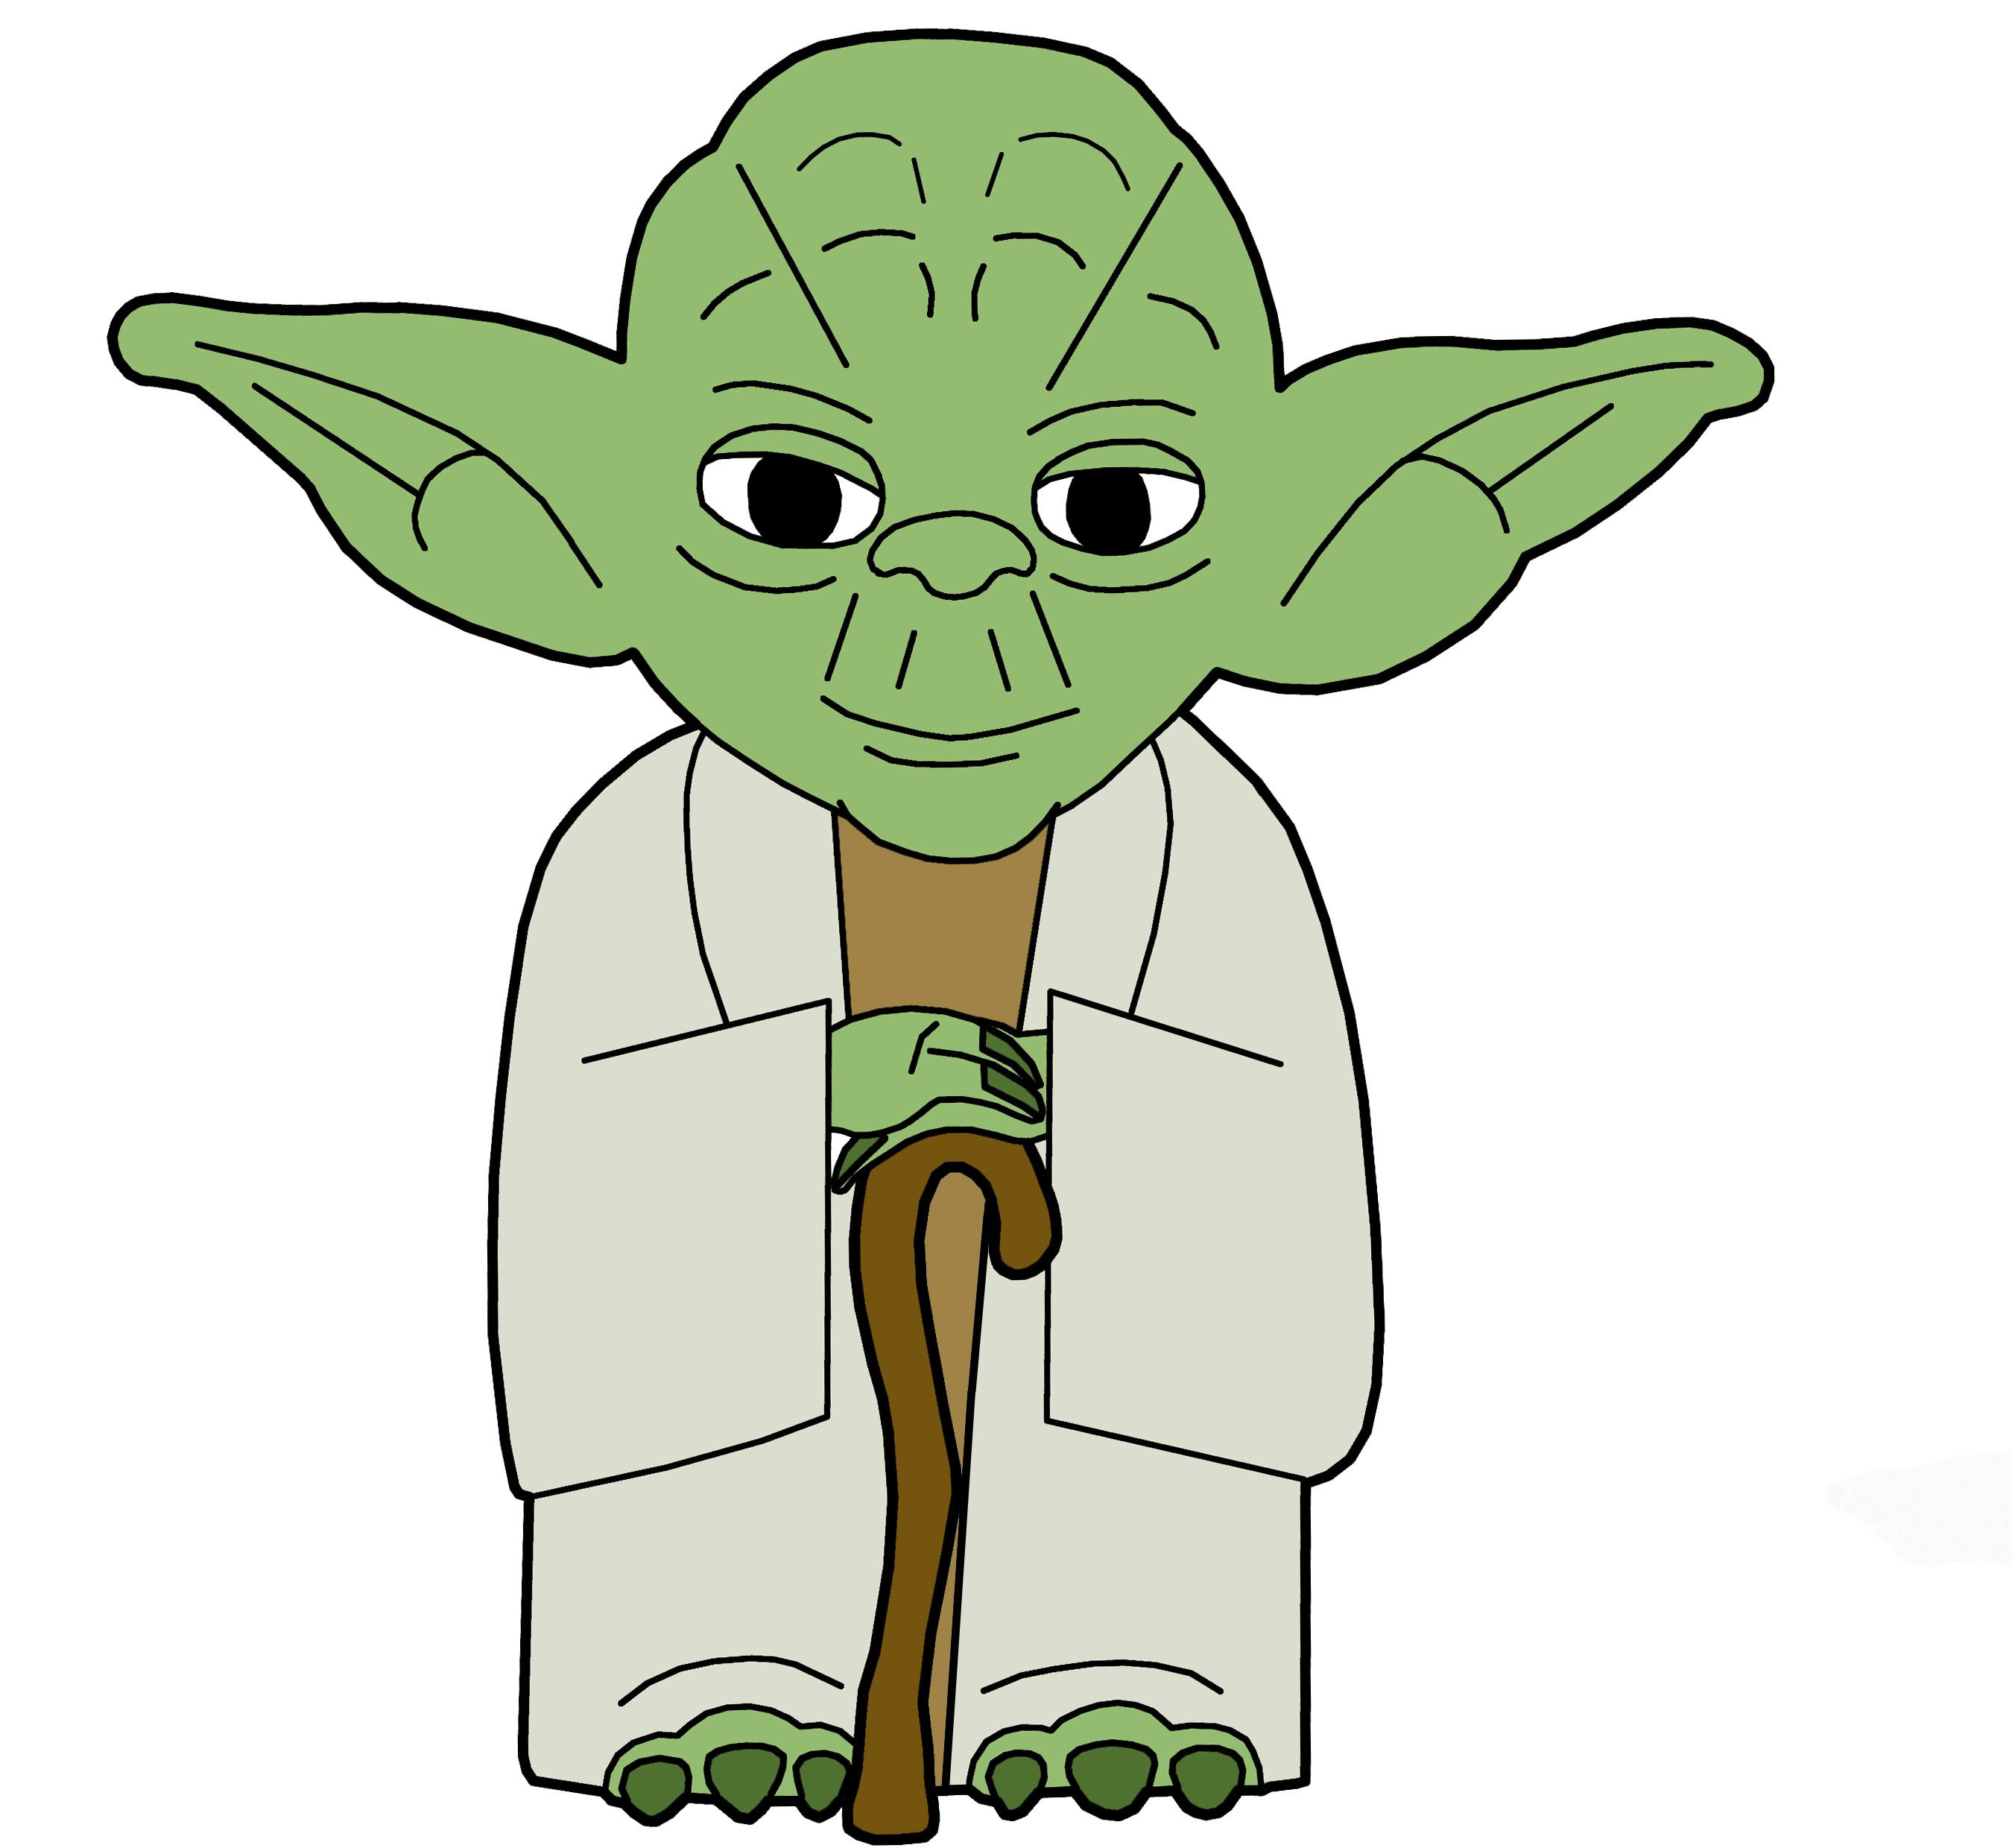 yoda dating Yoda had consistently tried to teach luke to focus on the present, and essentially, to grow up in this moment, with these words, he makes it clear.